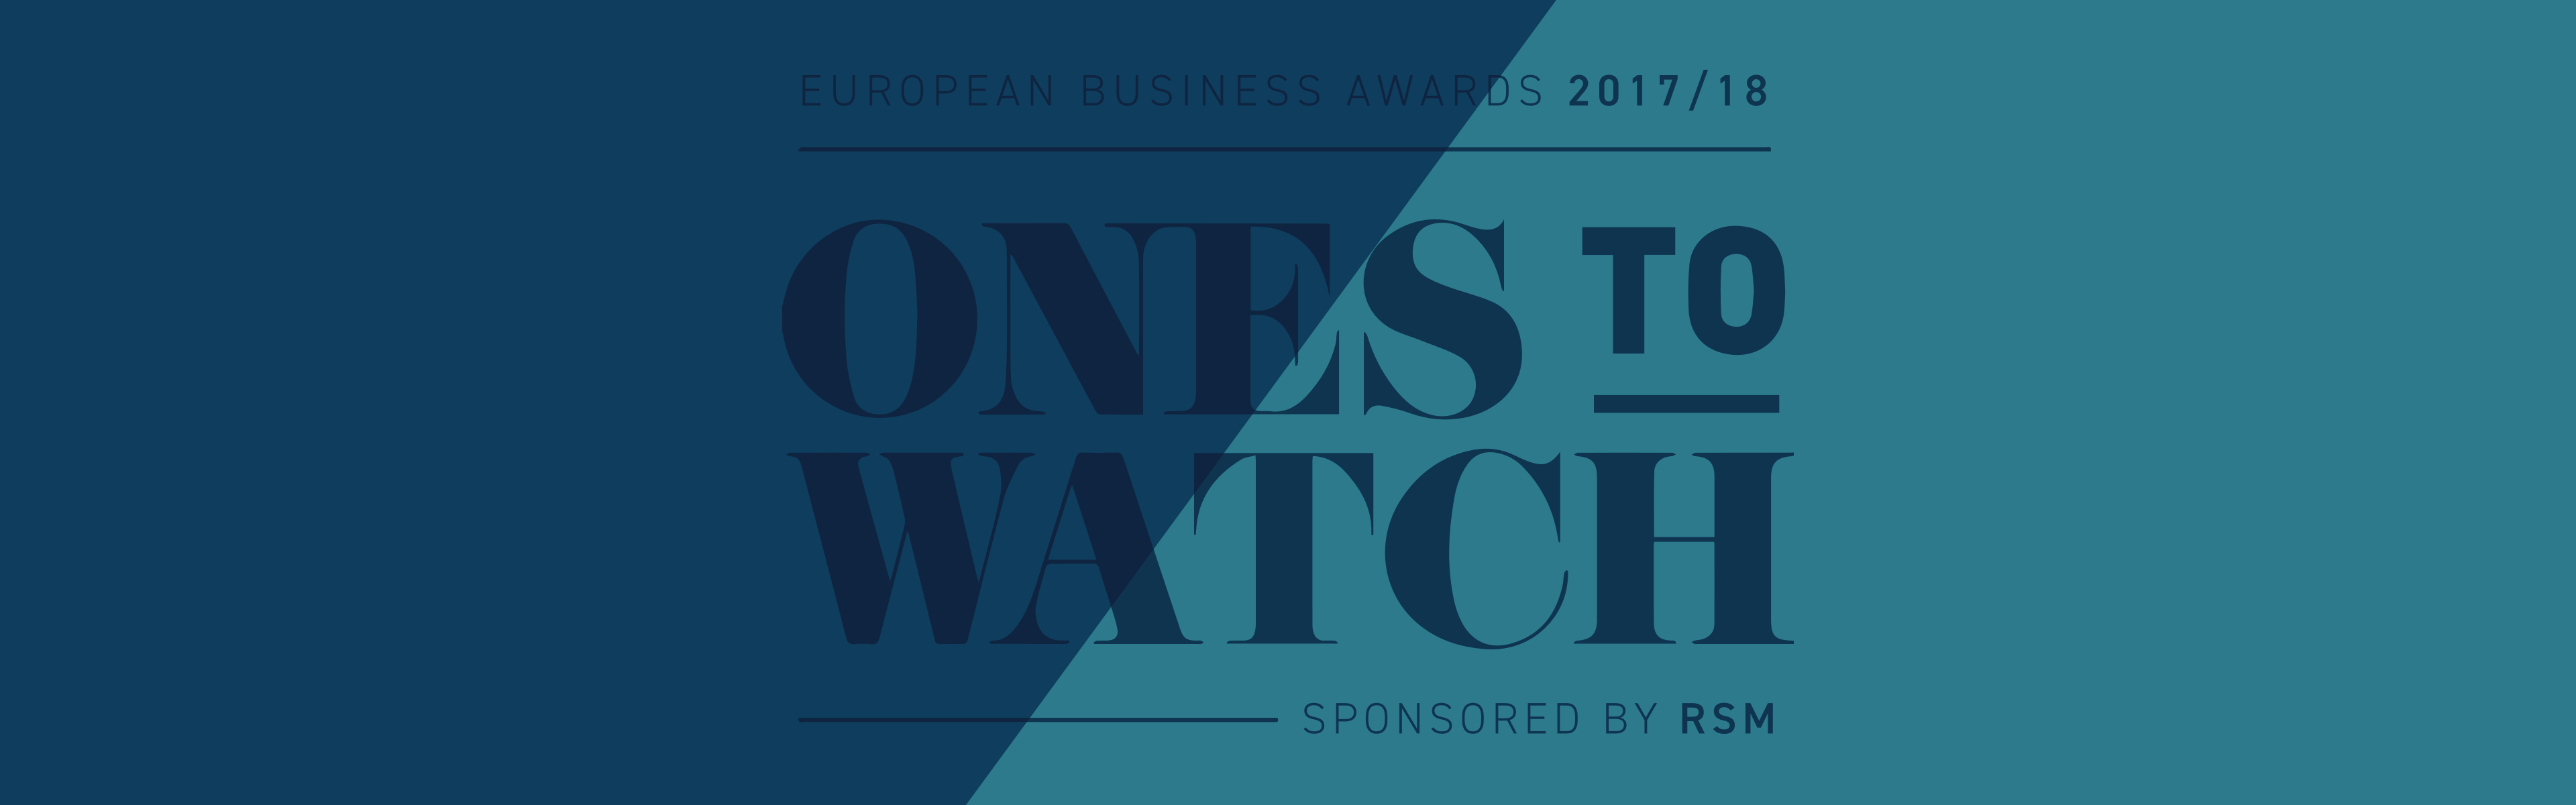 europe business award eleks